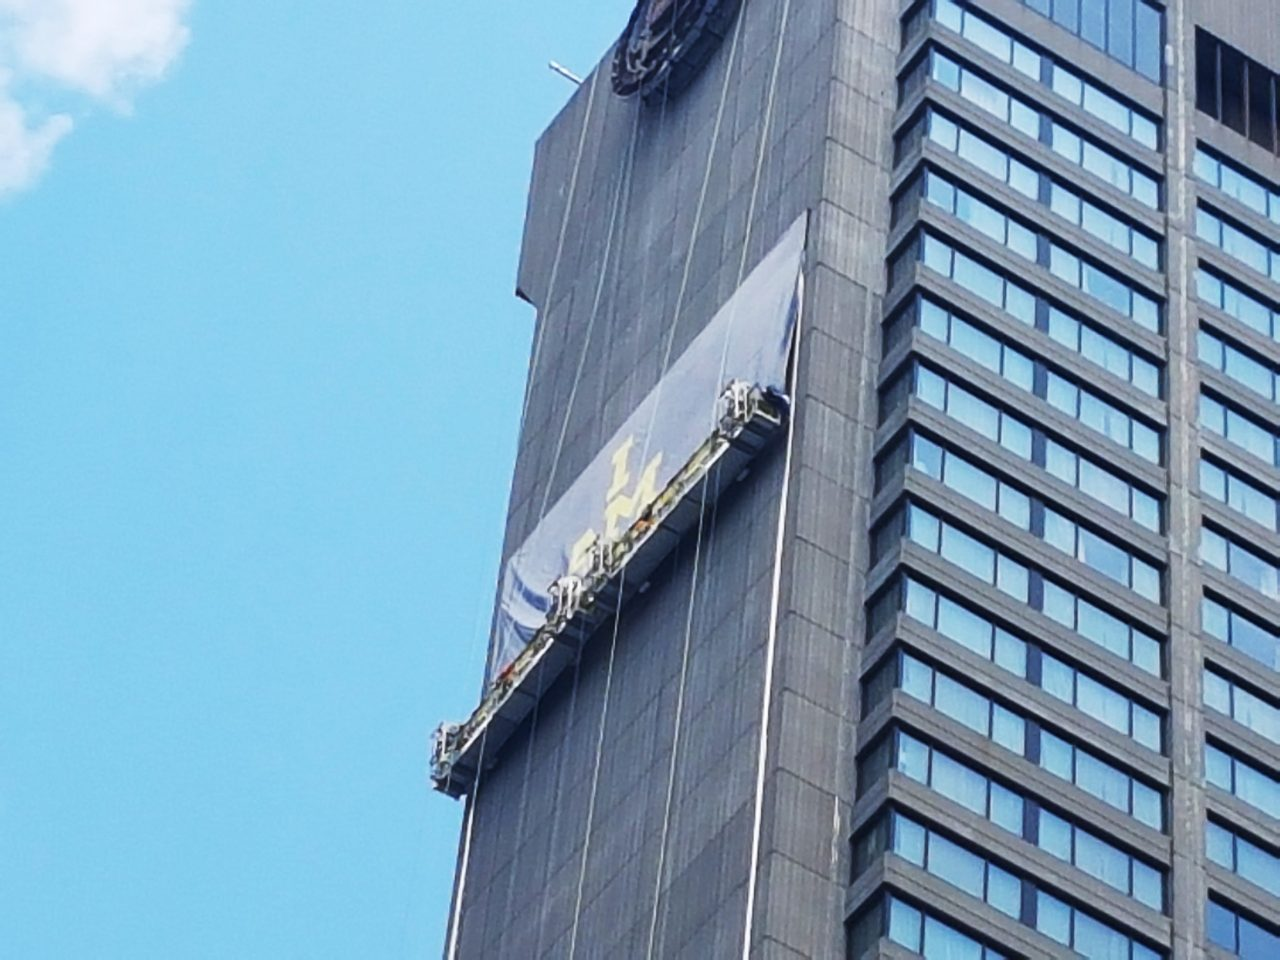 Workers on swing stages install the 22 storey Invictus Games print banner